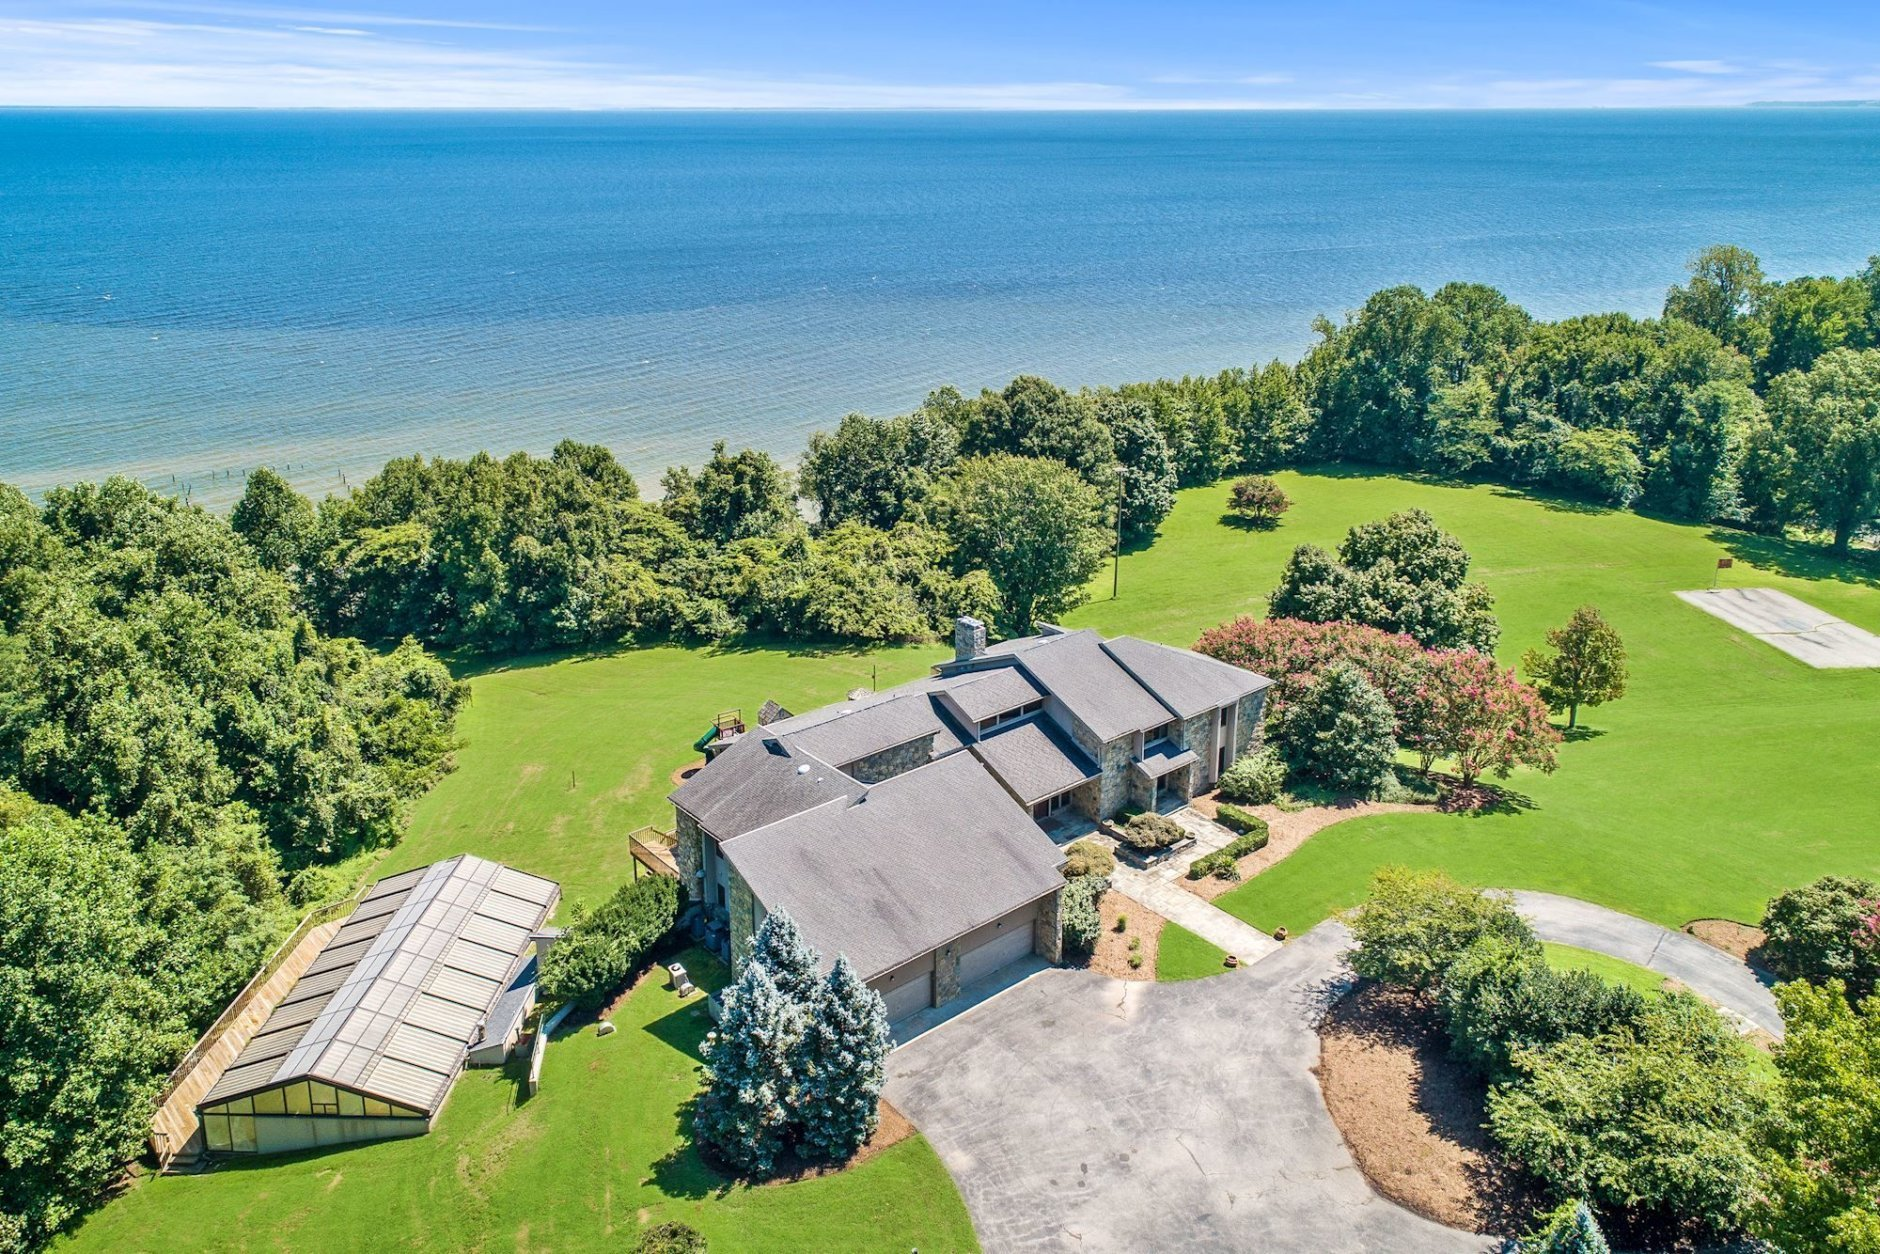 Peregrine Cliff has stunning views of Chesapeake Bay. (Courtesy Cummings & Co. Realtors)